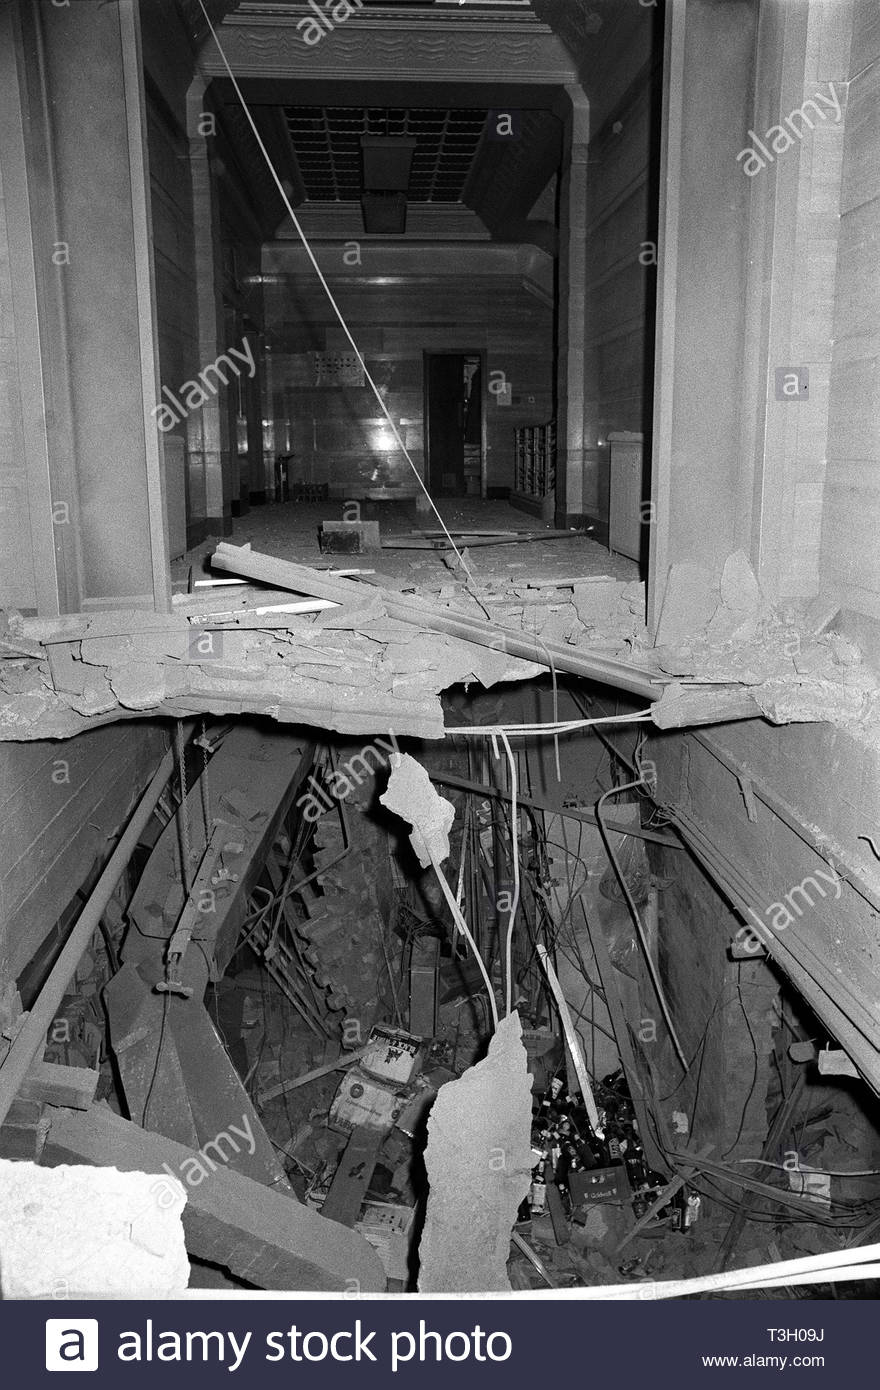 File photo dated 22/11/74 of the wreckage left at The Tavern in the Town pub in Birmingham after a bomb exploded in an underground bar. A botched warning call by the IRA caused or contributed to the deaths of 21 people killed in the 1974 Birmingham pub bombings, an inquest jury at the city's civil court has concluded. - Stock Image